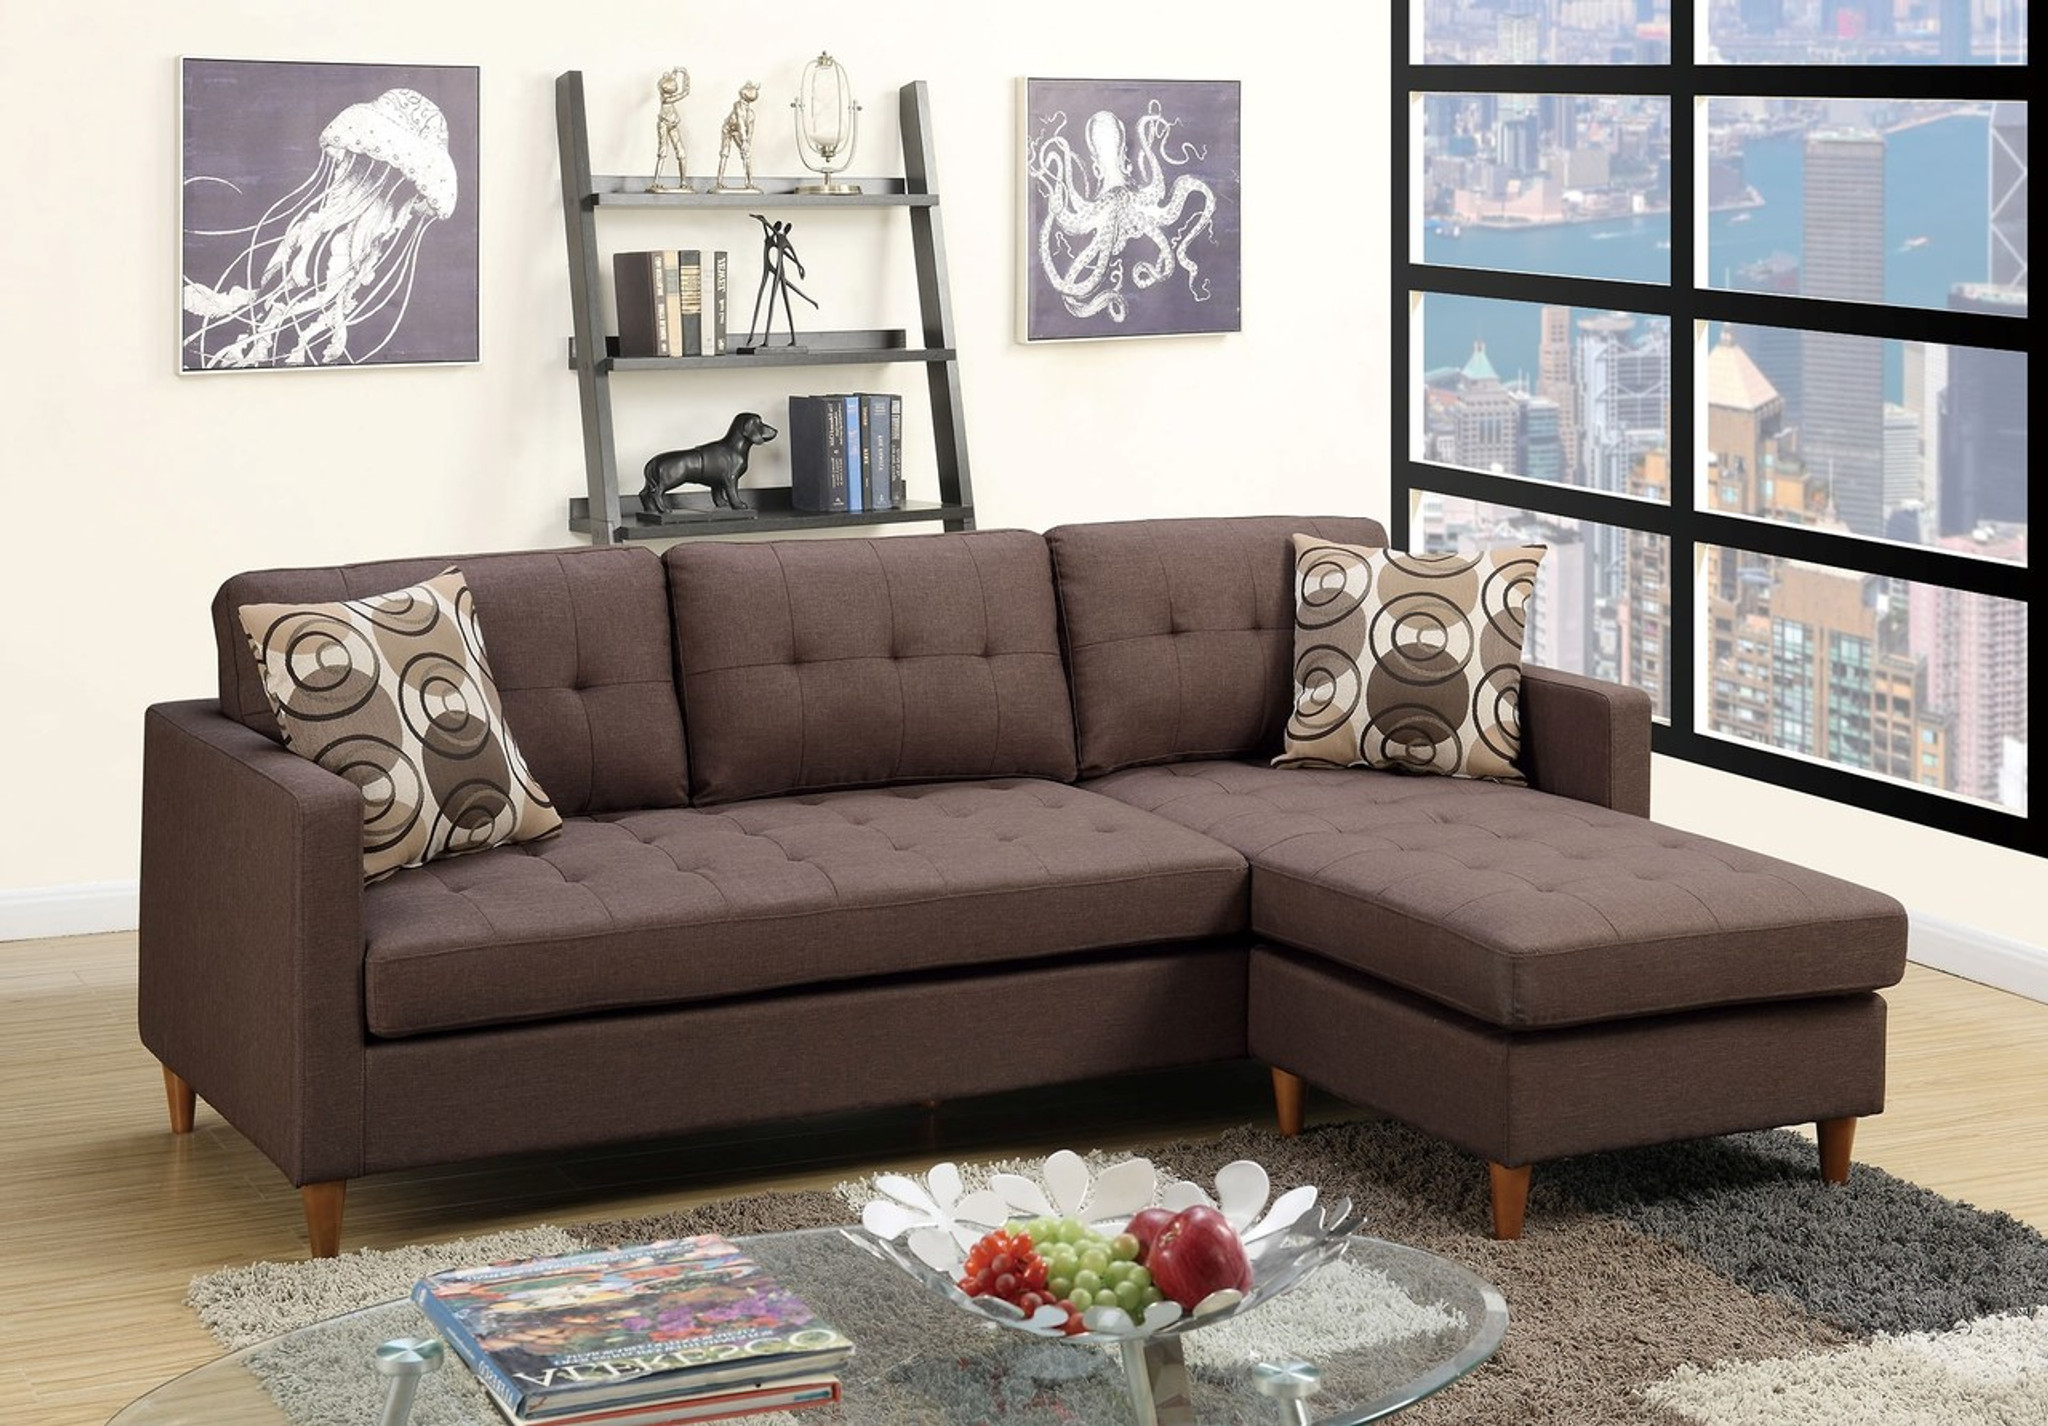 Awe Inspiring 2Pc Rina Reversible Sectional In Chocolate Unemploymentrelief Wooden Chair Designs For Living Room Unemploymentrelieforg